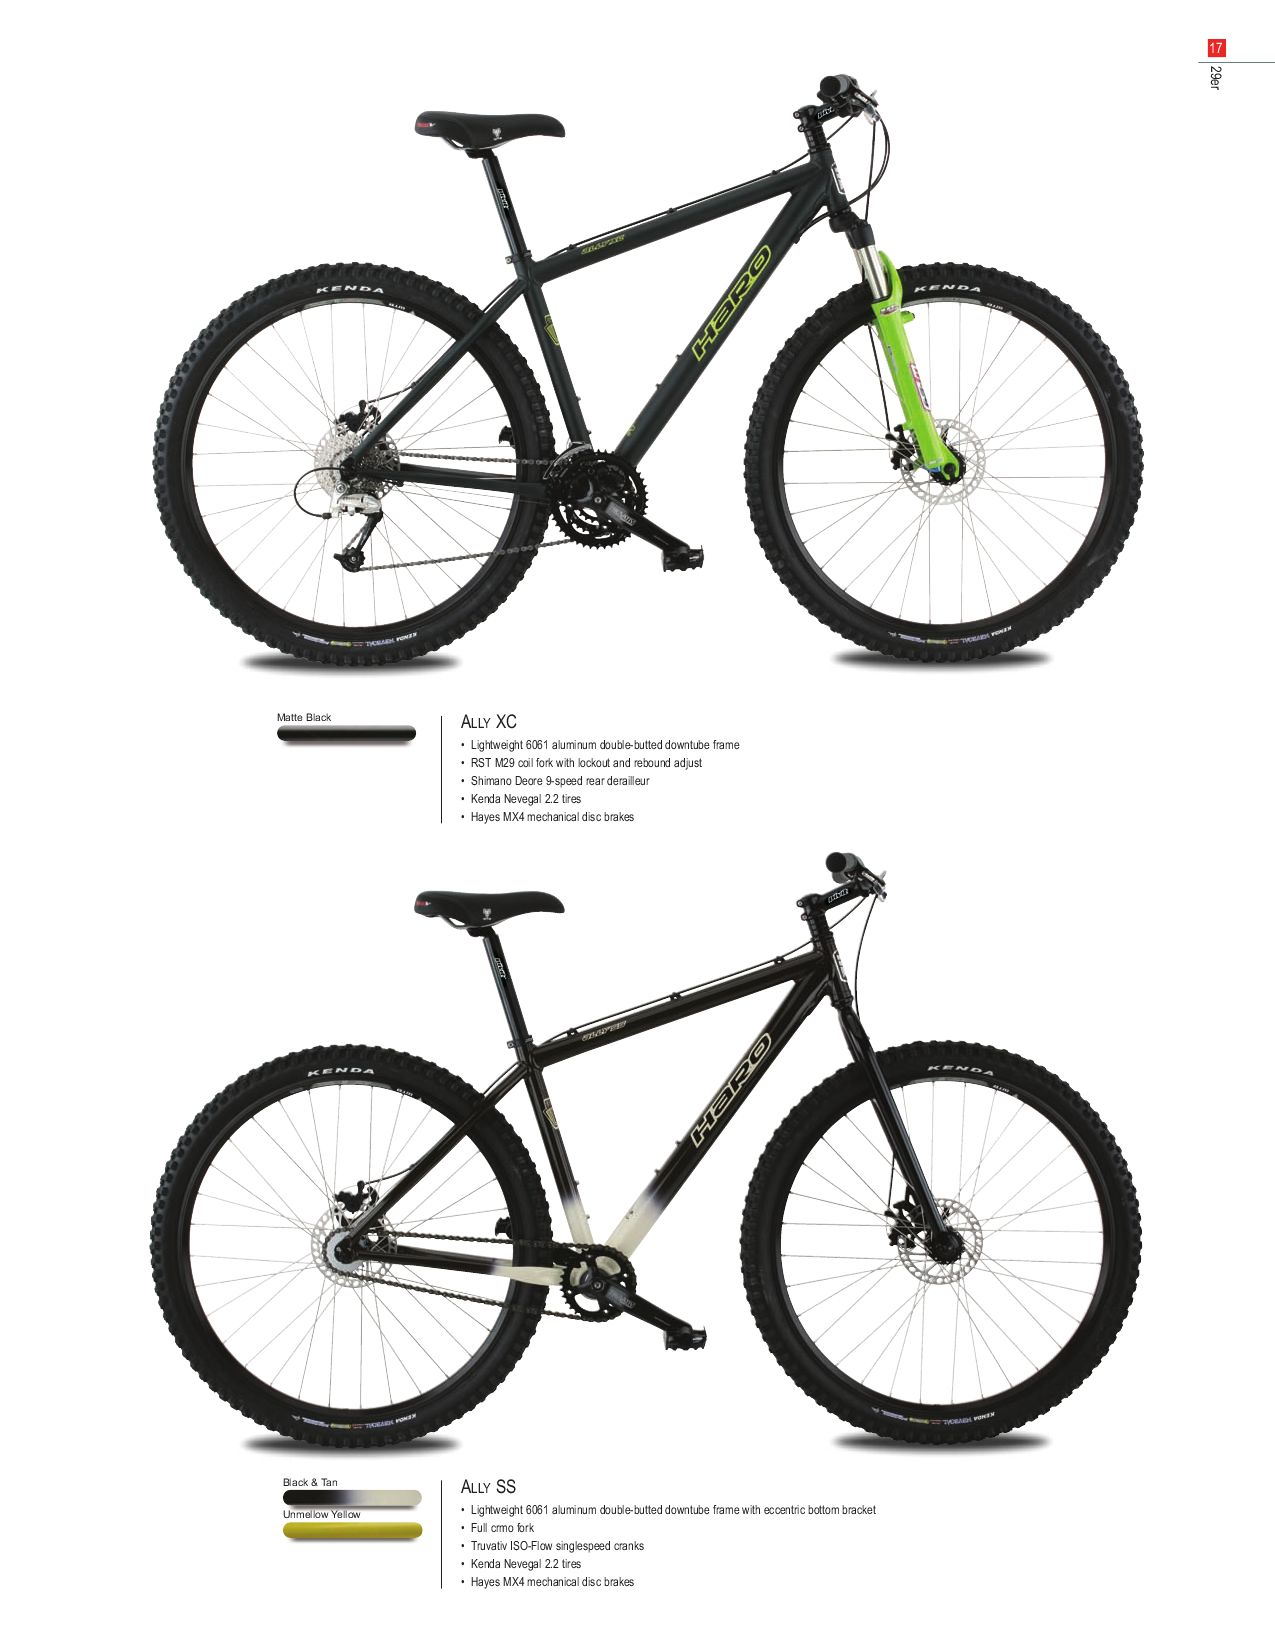 Haro MTB 2009 Catalog by haro bikes - issuu